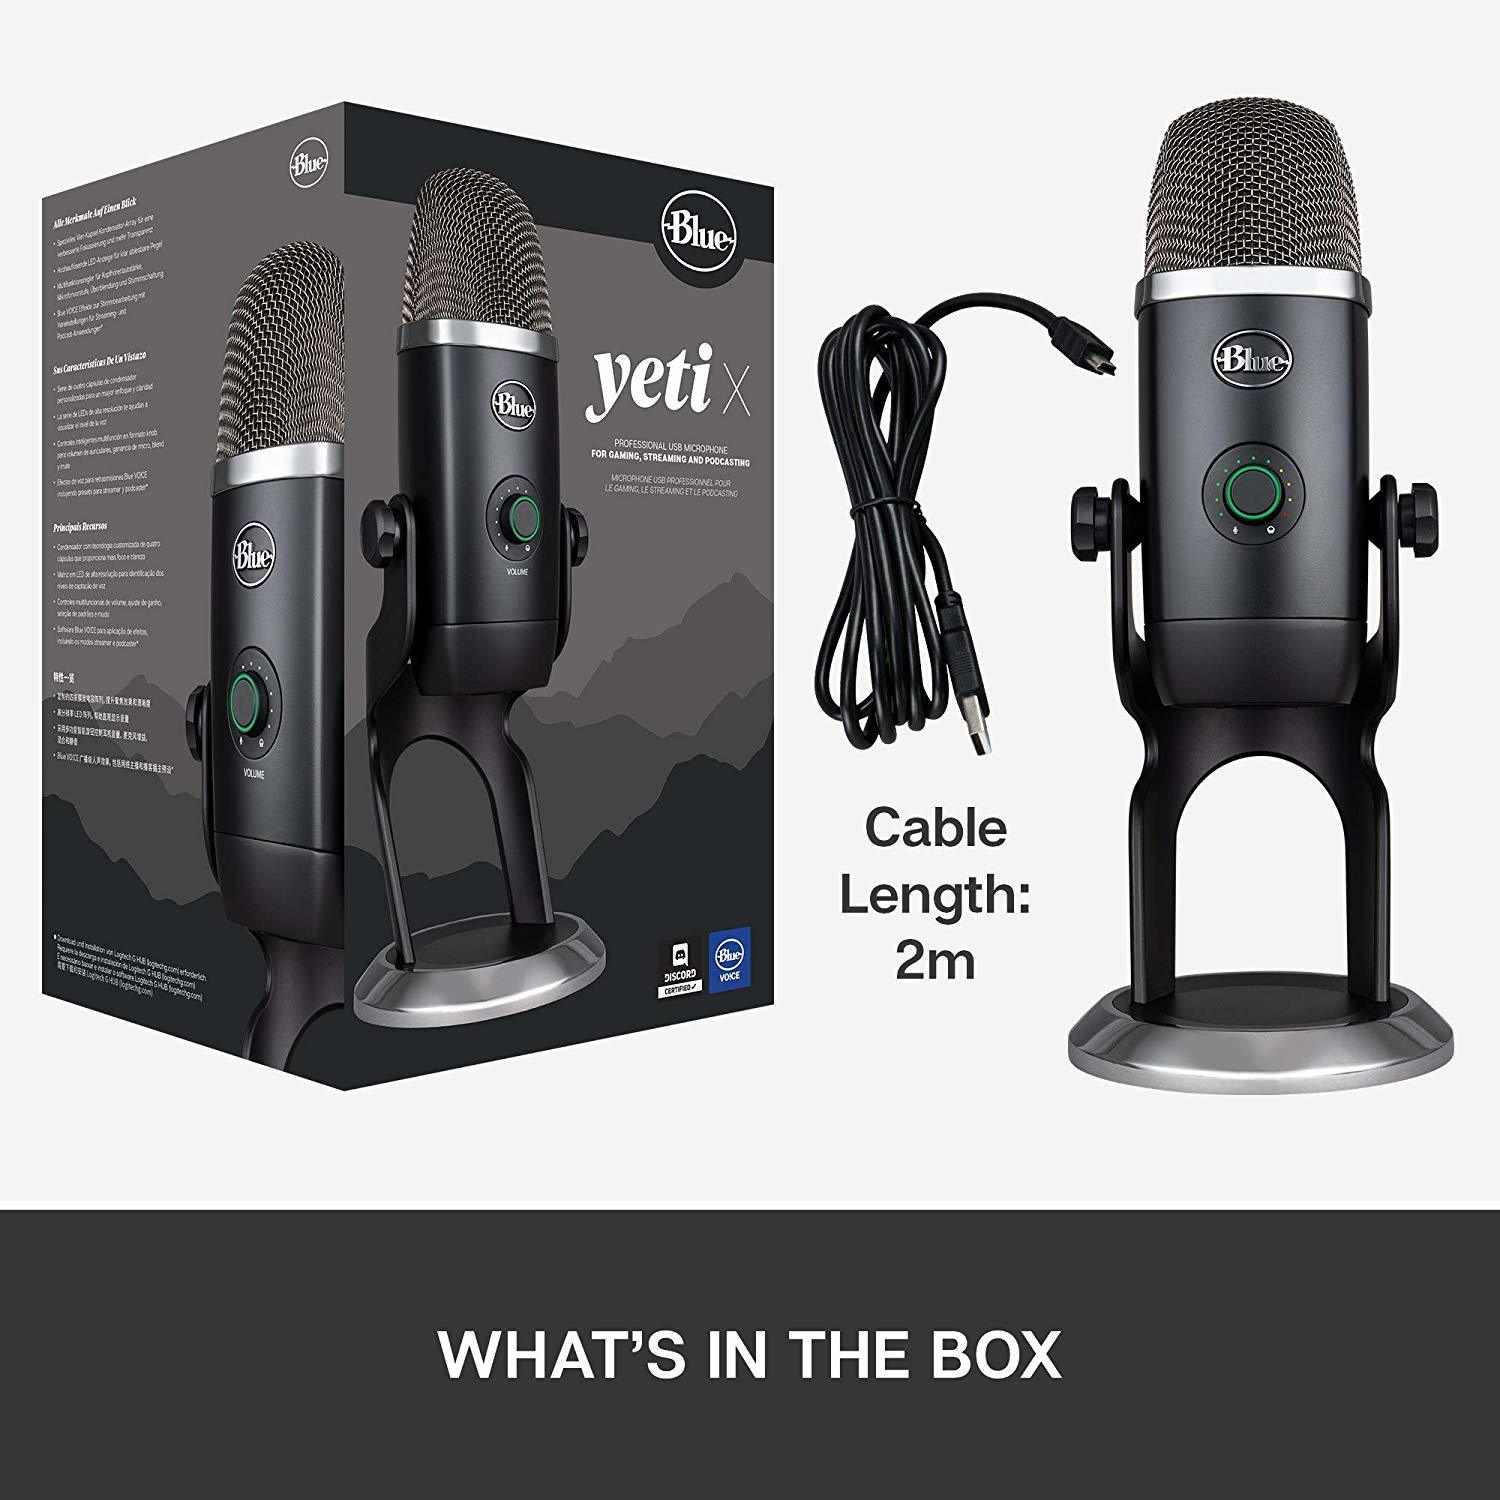 Blue Microphones Yeti X Professional USB Microphone - Black - PC Games